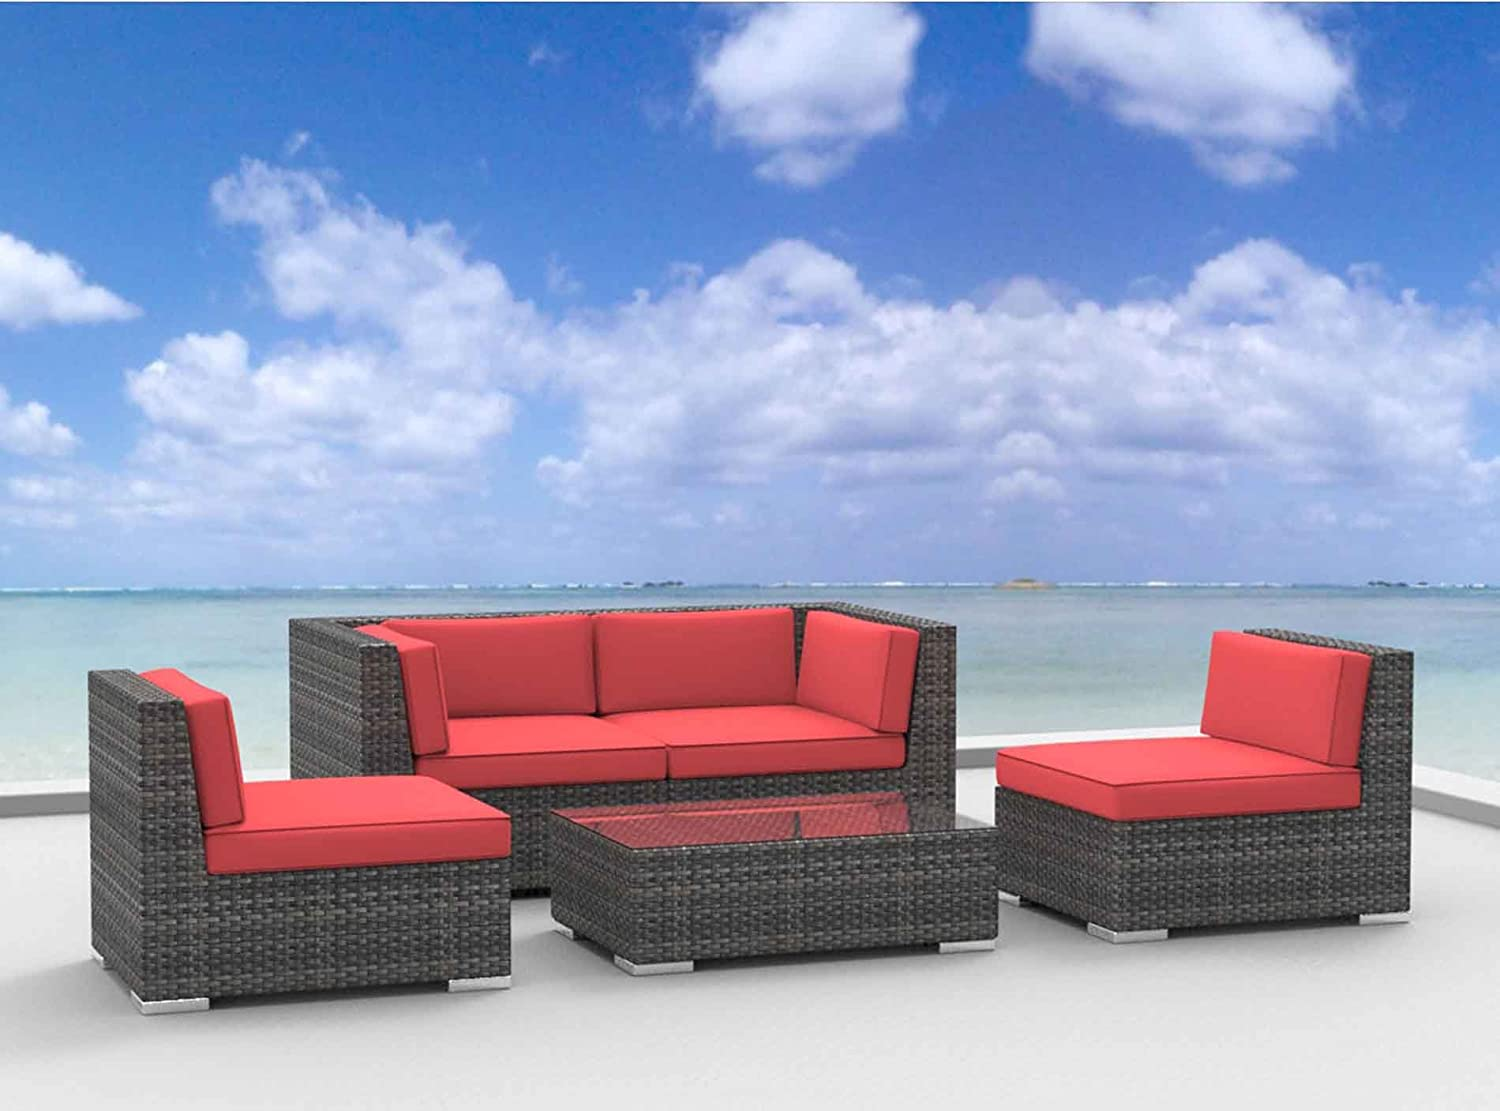 www.urbanfurnishing.net Urban Furnishing - RIO 5pc Modern Outdoor Backyard Wicker Rattan Patio Furniture Sofa Sectional Couch Set - Coral Red at Sears.com